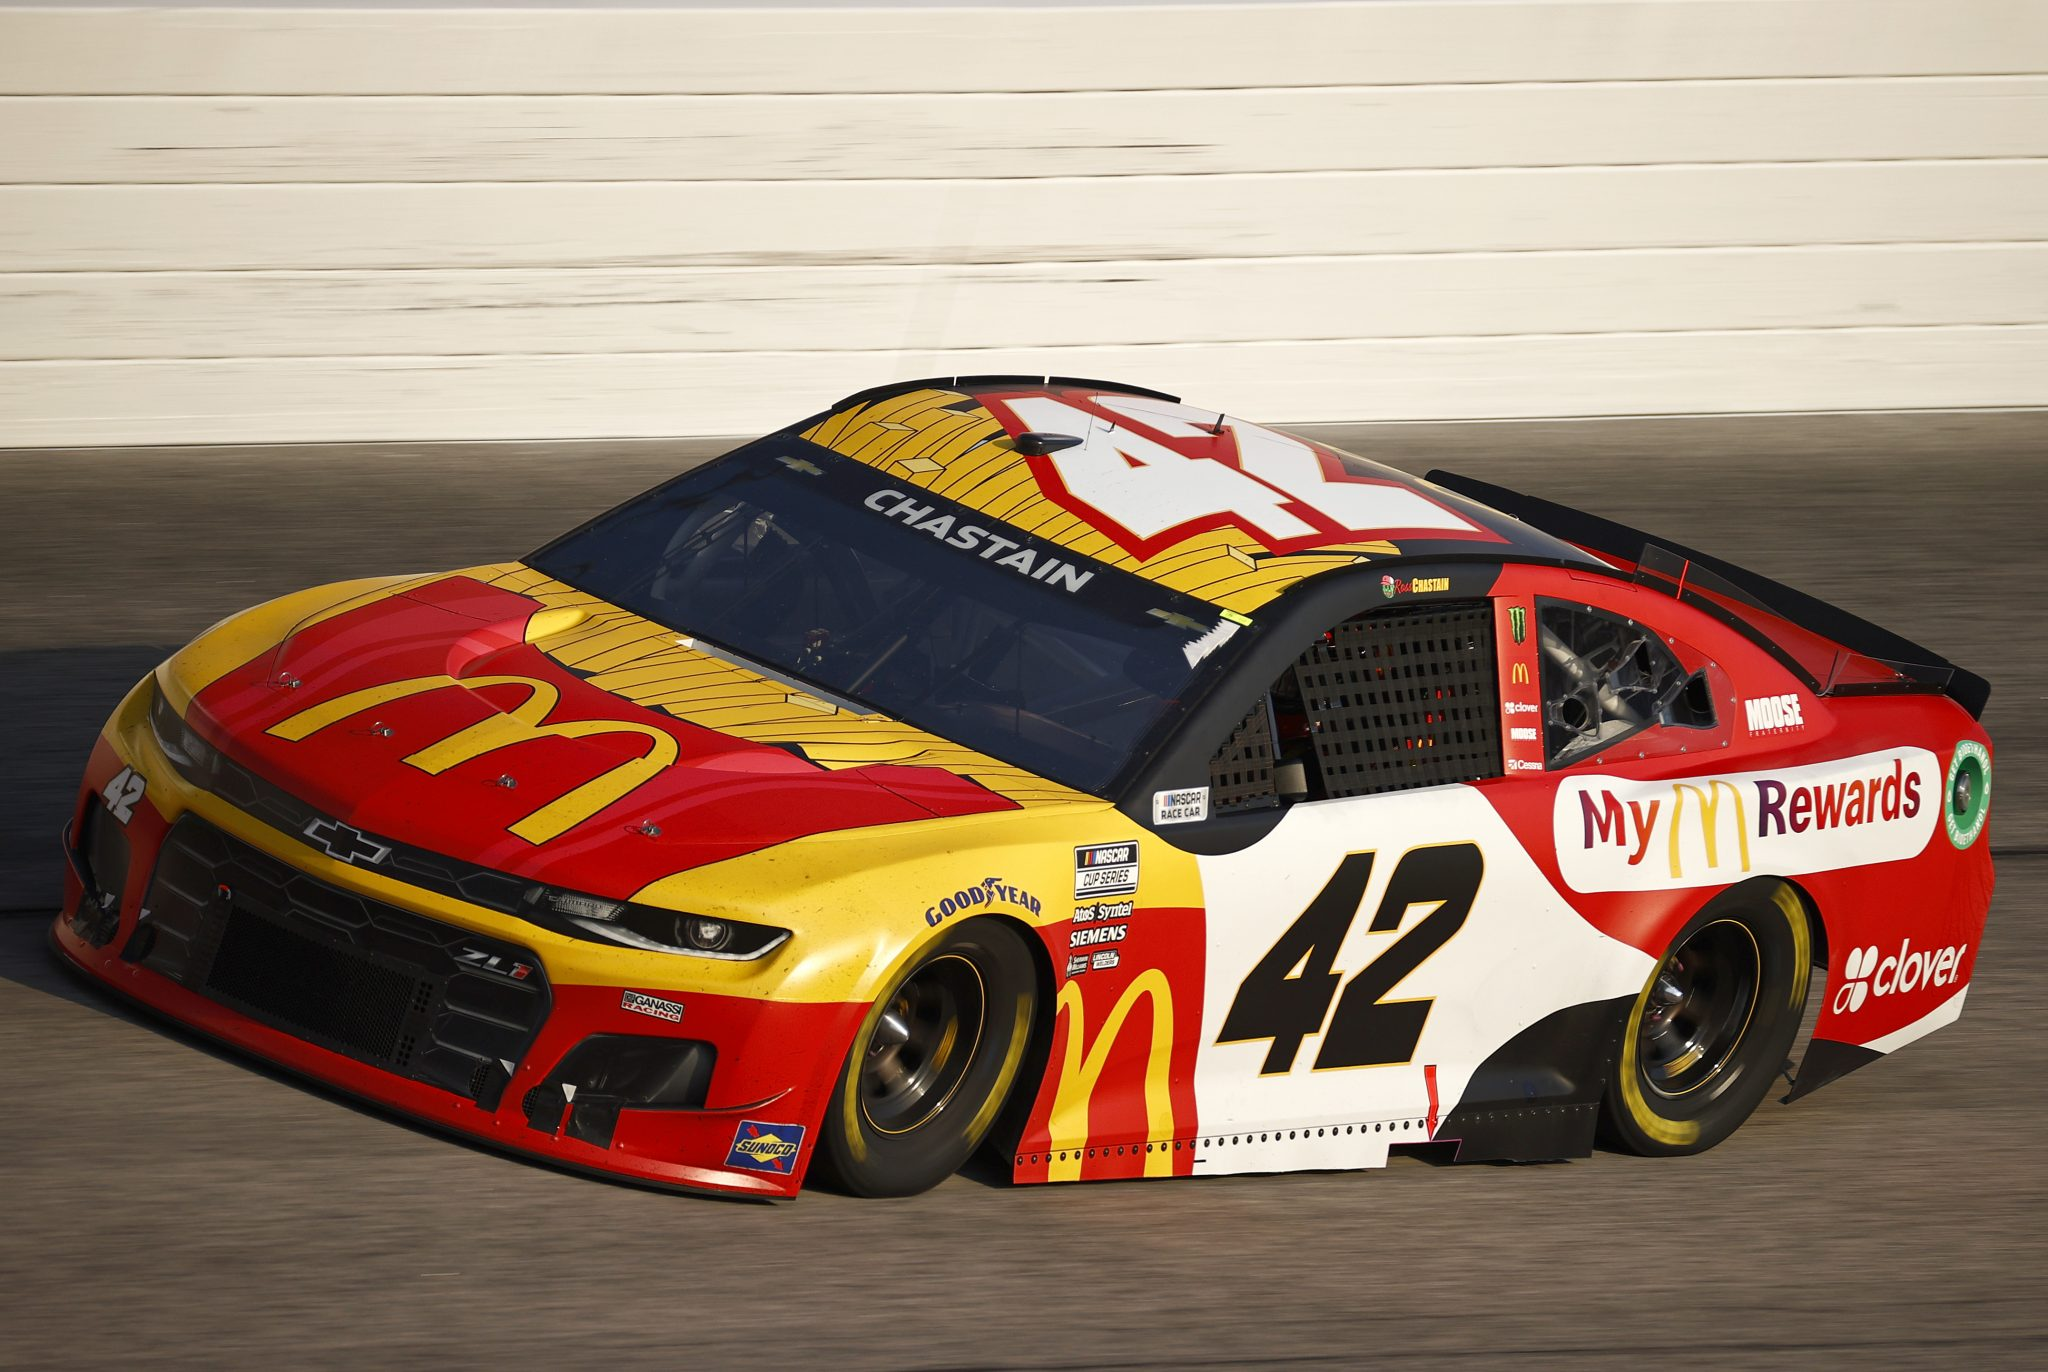 DARLINGTON, SOUTH CAROLINA - SEPTEMBER 05: Ross Chastain, driver of the #42 McDonald's Chevrolet, drives during the NASCAR Cup Series Cook Out Southern 500 at Darlington Raceway on September 05, 2021 in Darlington, South Carolina. (Photo by Jared C. Tilton/Getty Images) | Getty Images